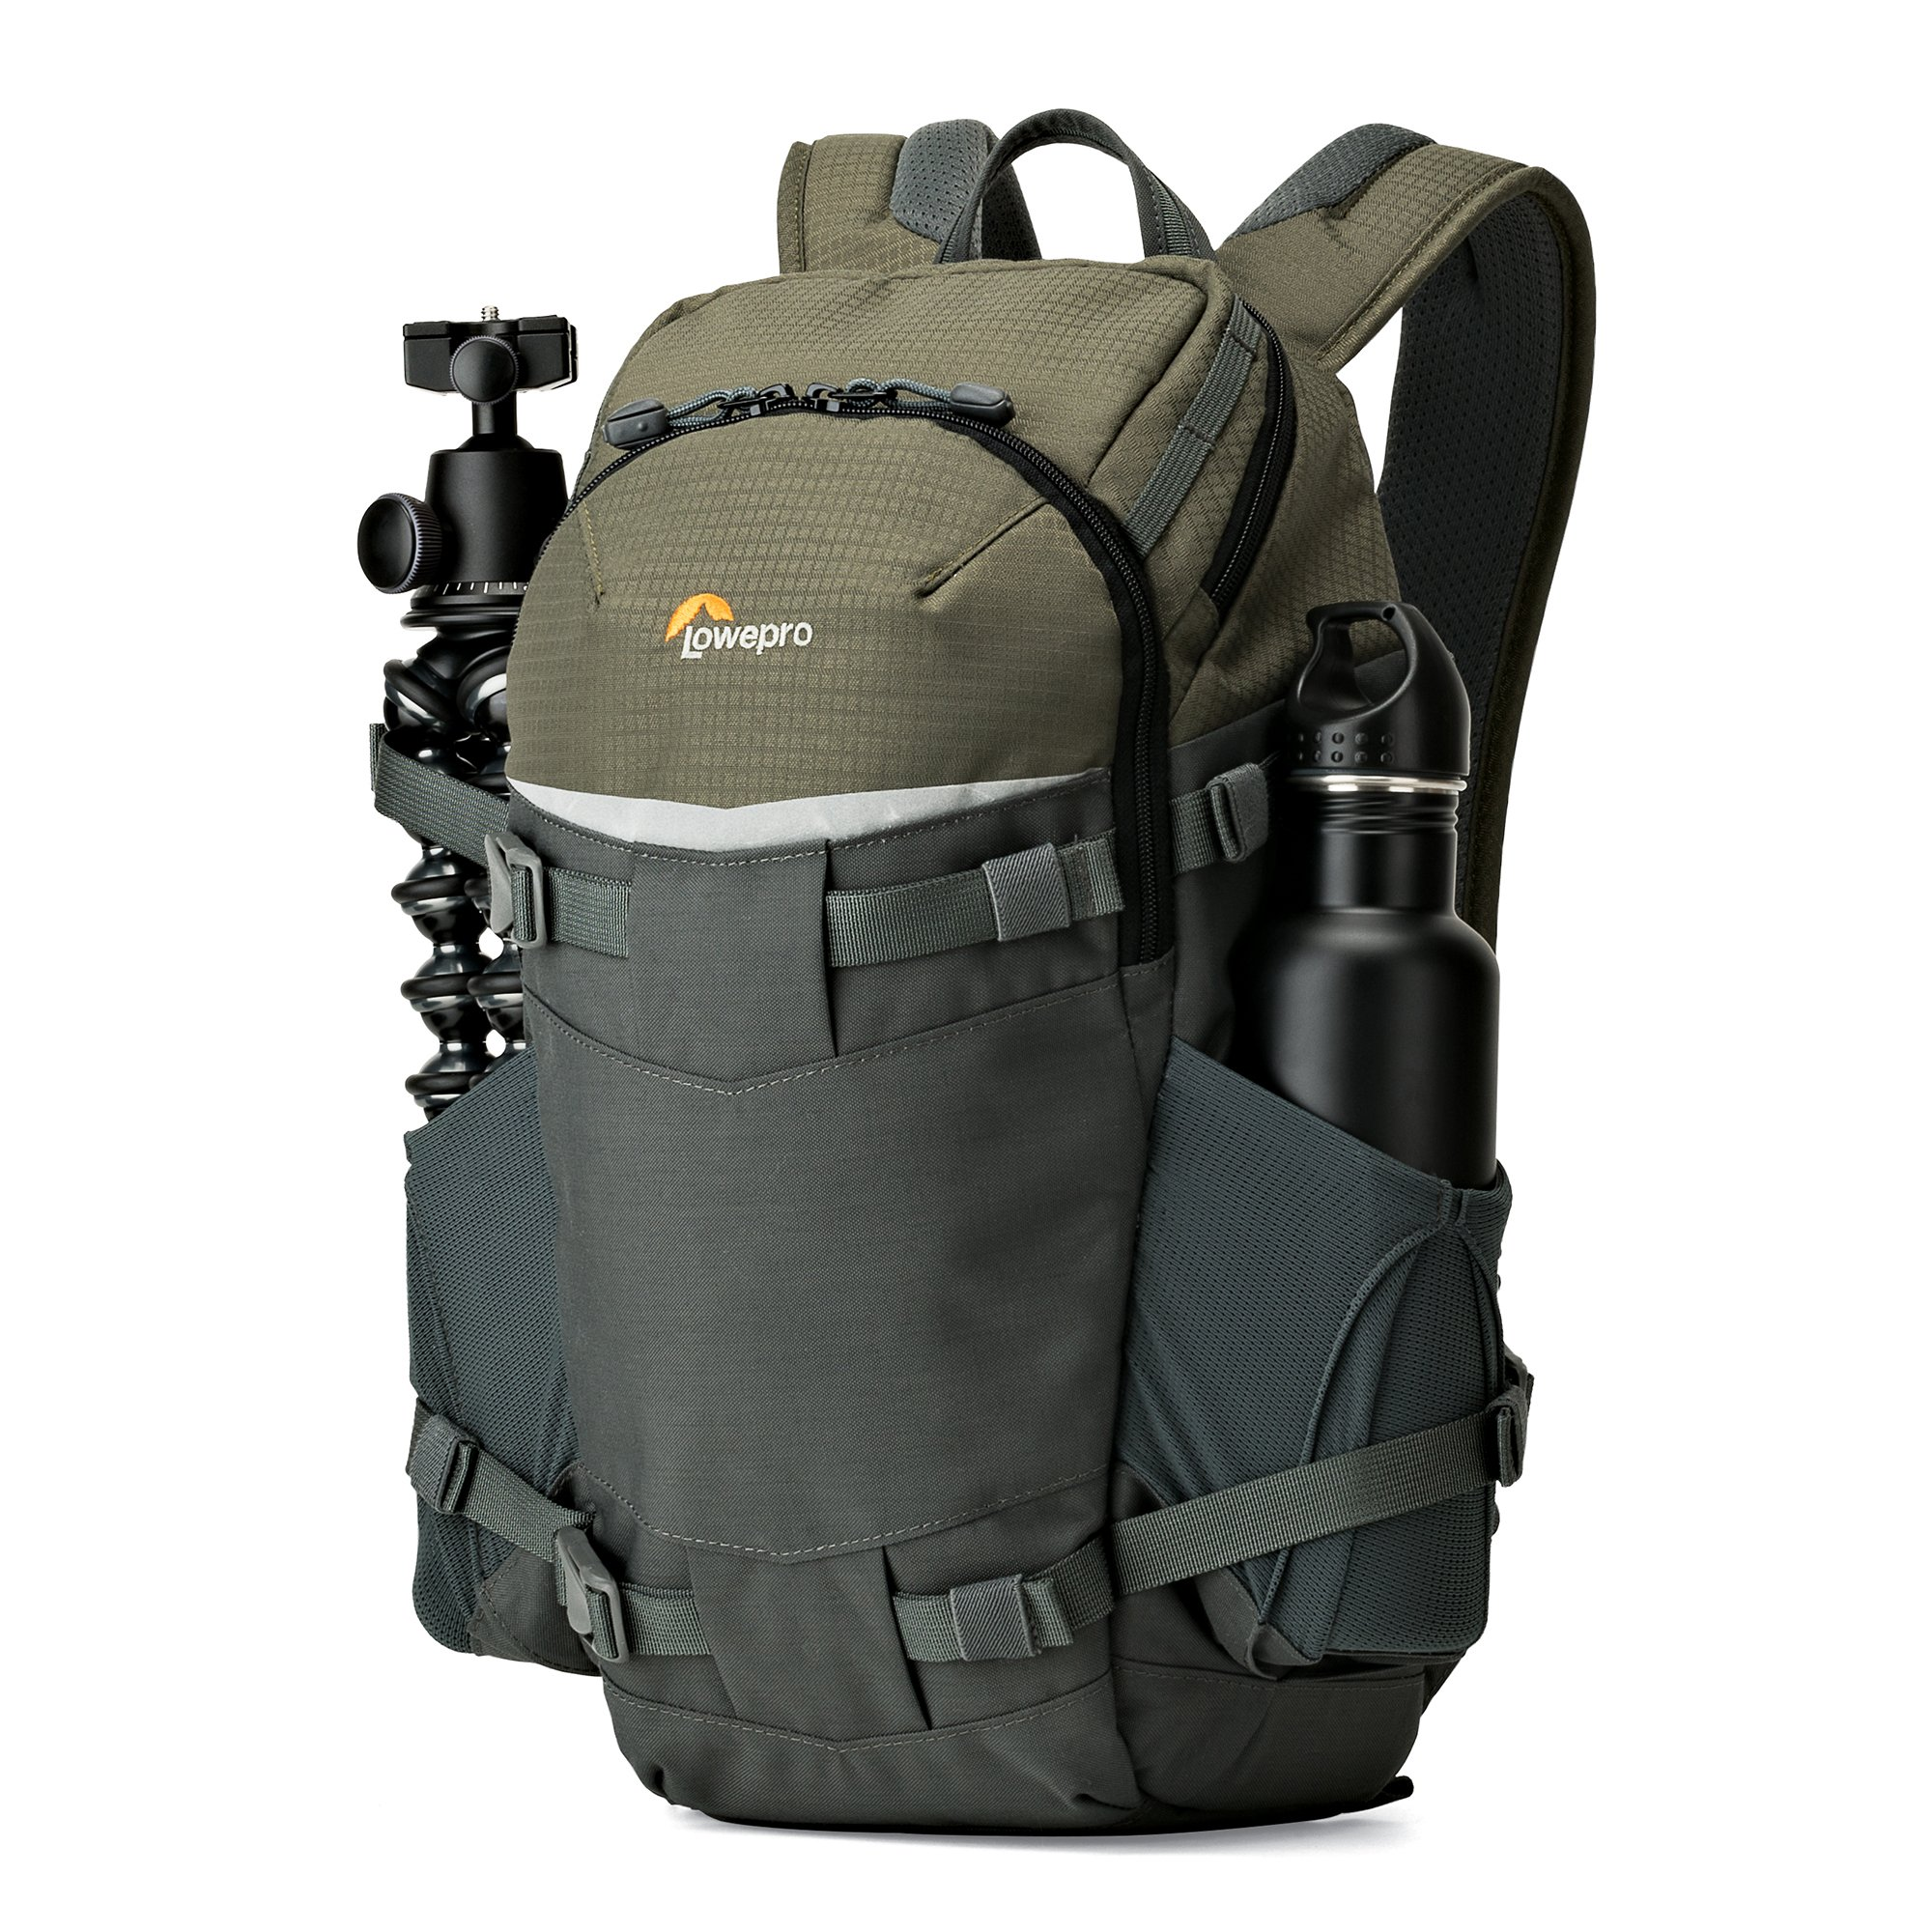 Lowepro Flipside Trek BP 250 AW - Outdoor Camera Backpack for Mirrorless or Compact DSLR w/ Rain Cover and Tablet Pocket. by Lowepro (Image #2)